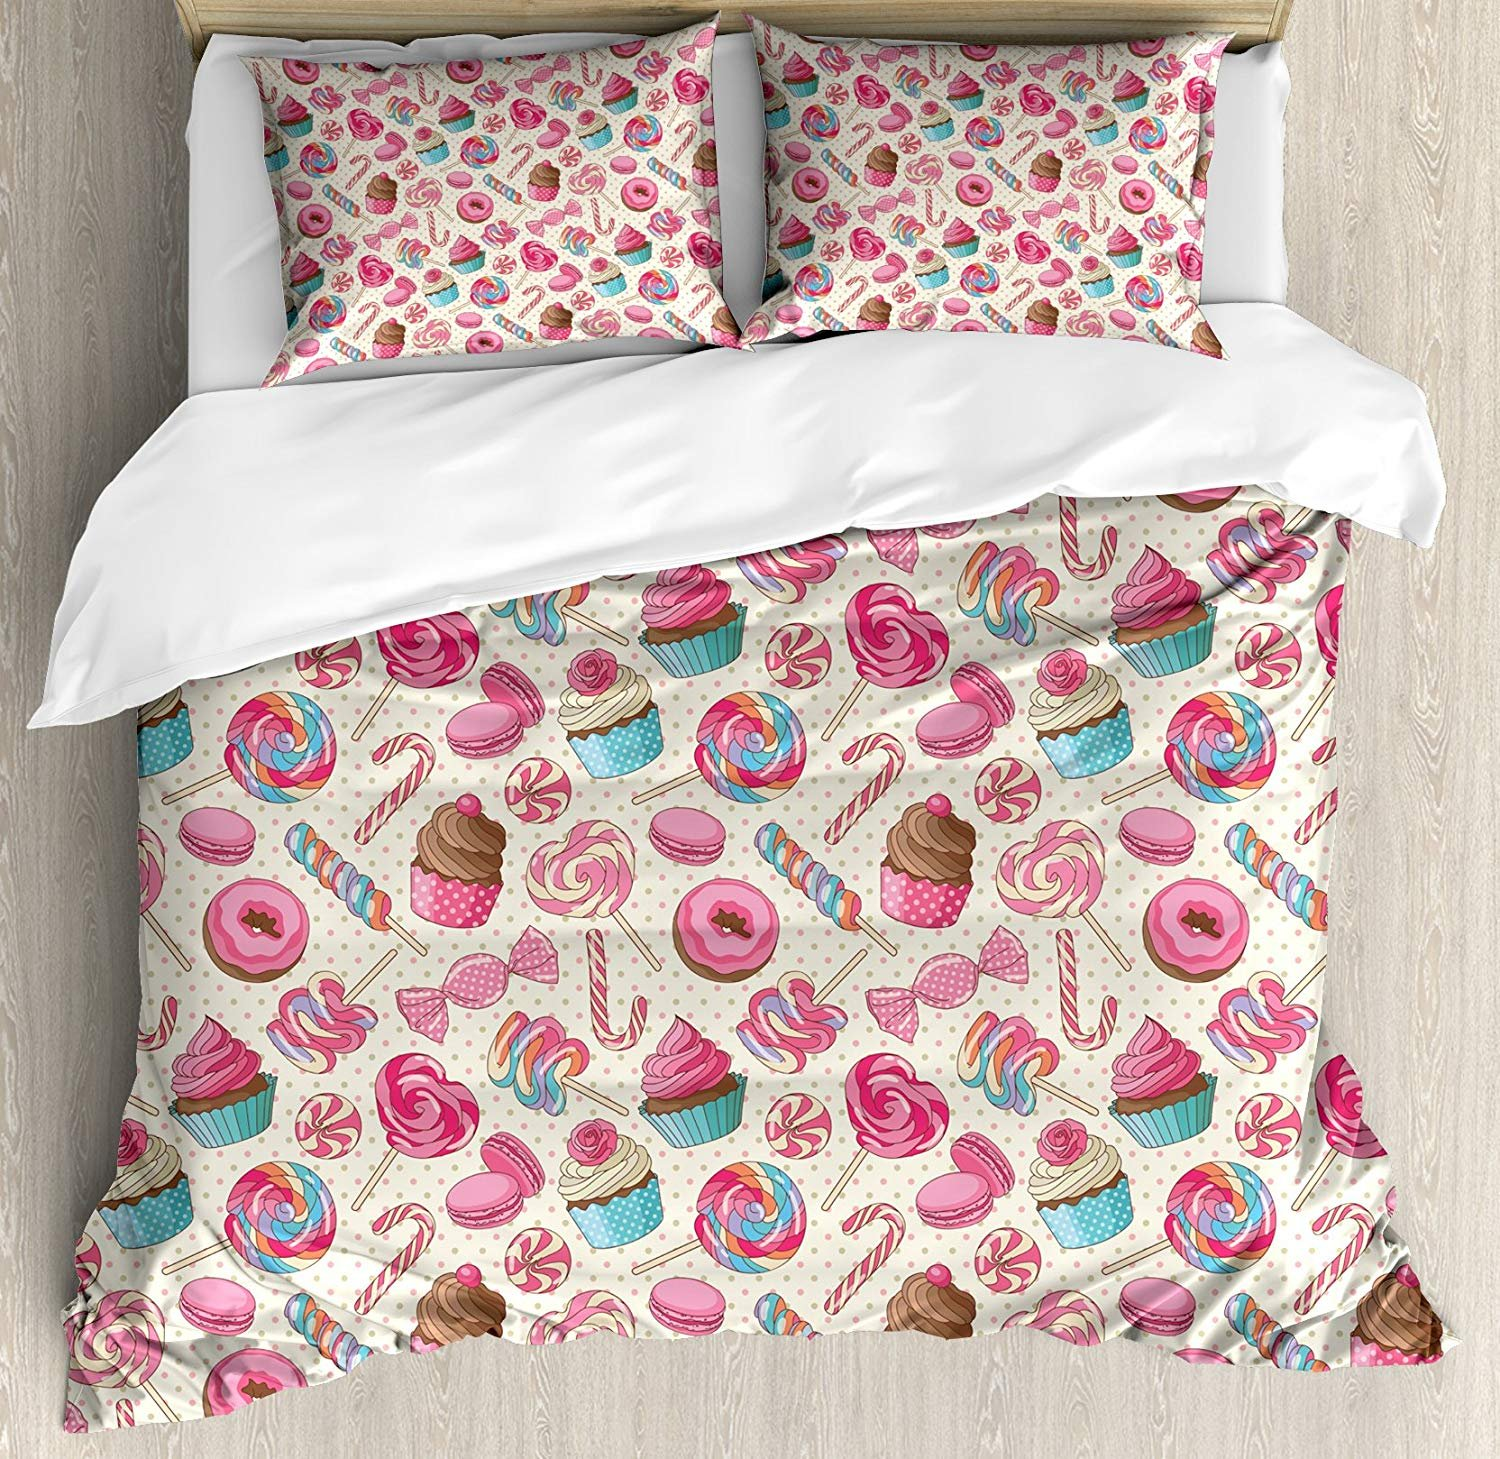 WAZZIT 4 Piece Duvet Cover Set Candy Cane Yummy Sweet Lollipop Candy Macaroon Cupcake and Donut on Polka Dots Pattern Print Bedding Set with Zipper Closure Matching 2 Pillow Shams by WAZZIT